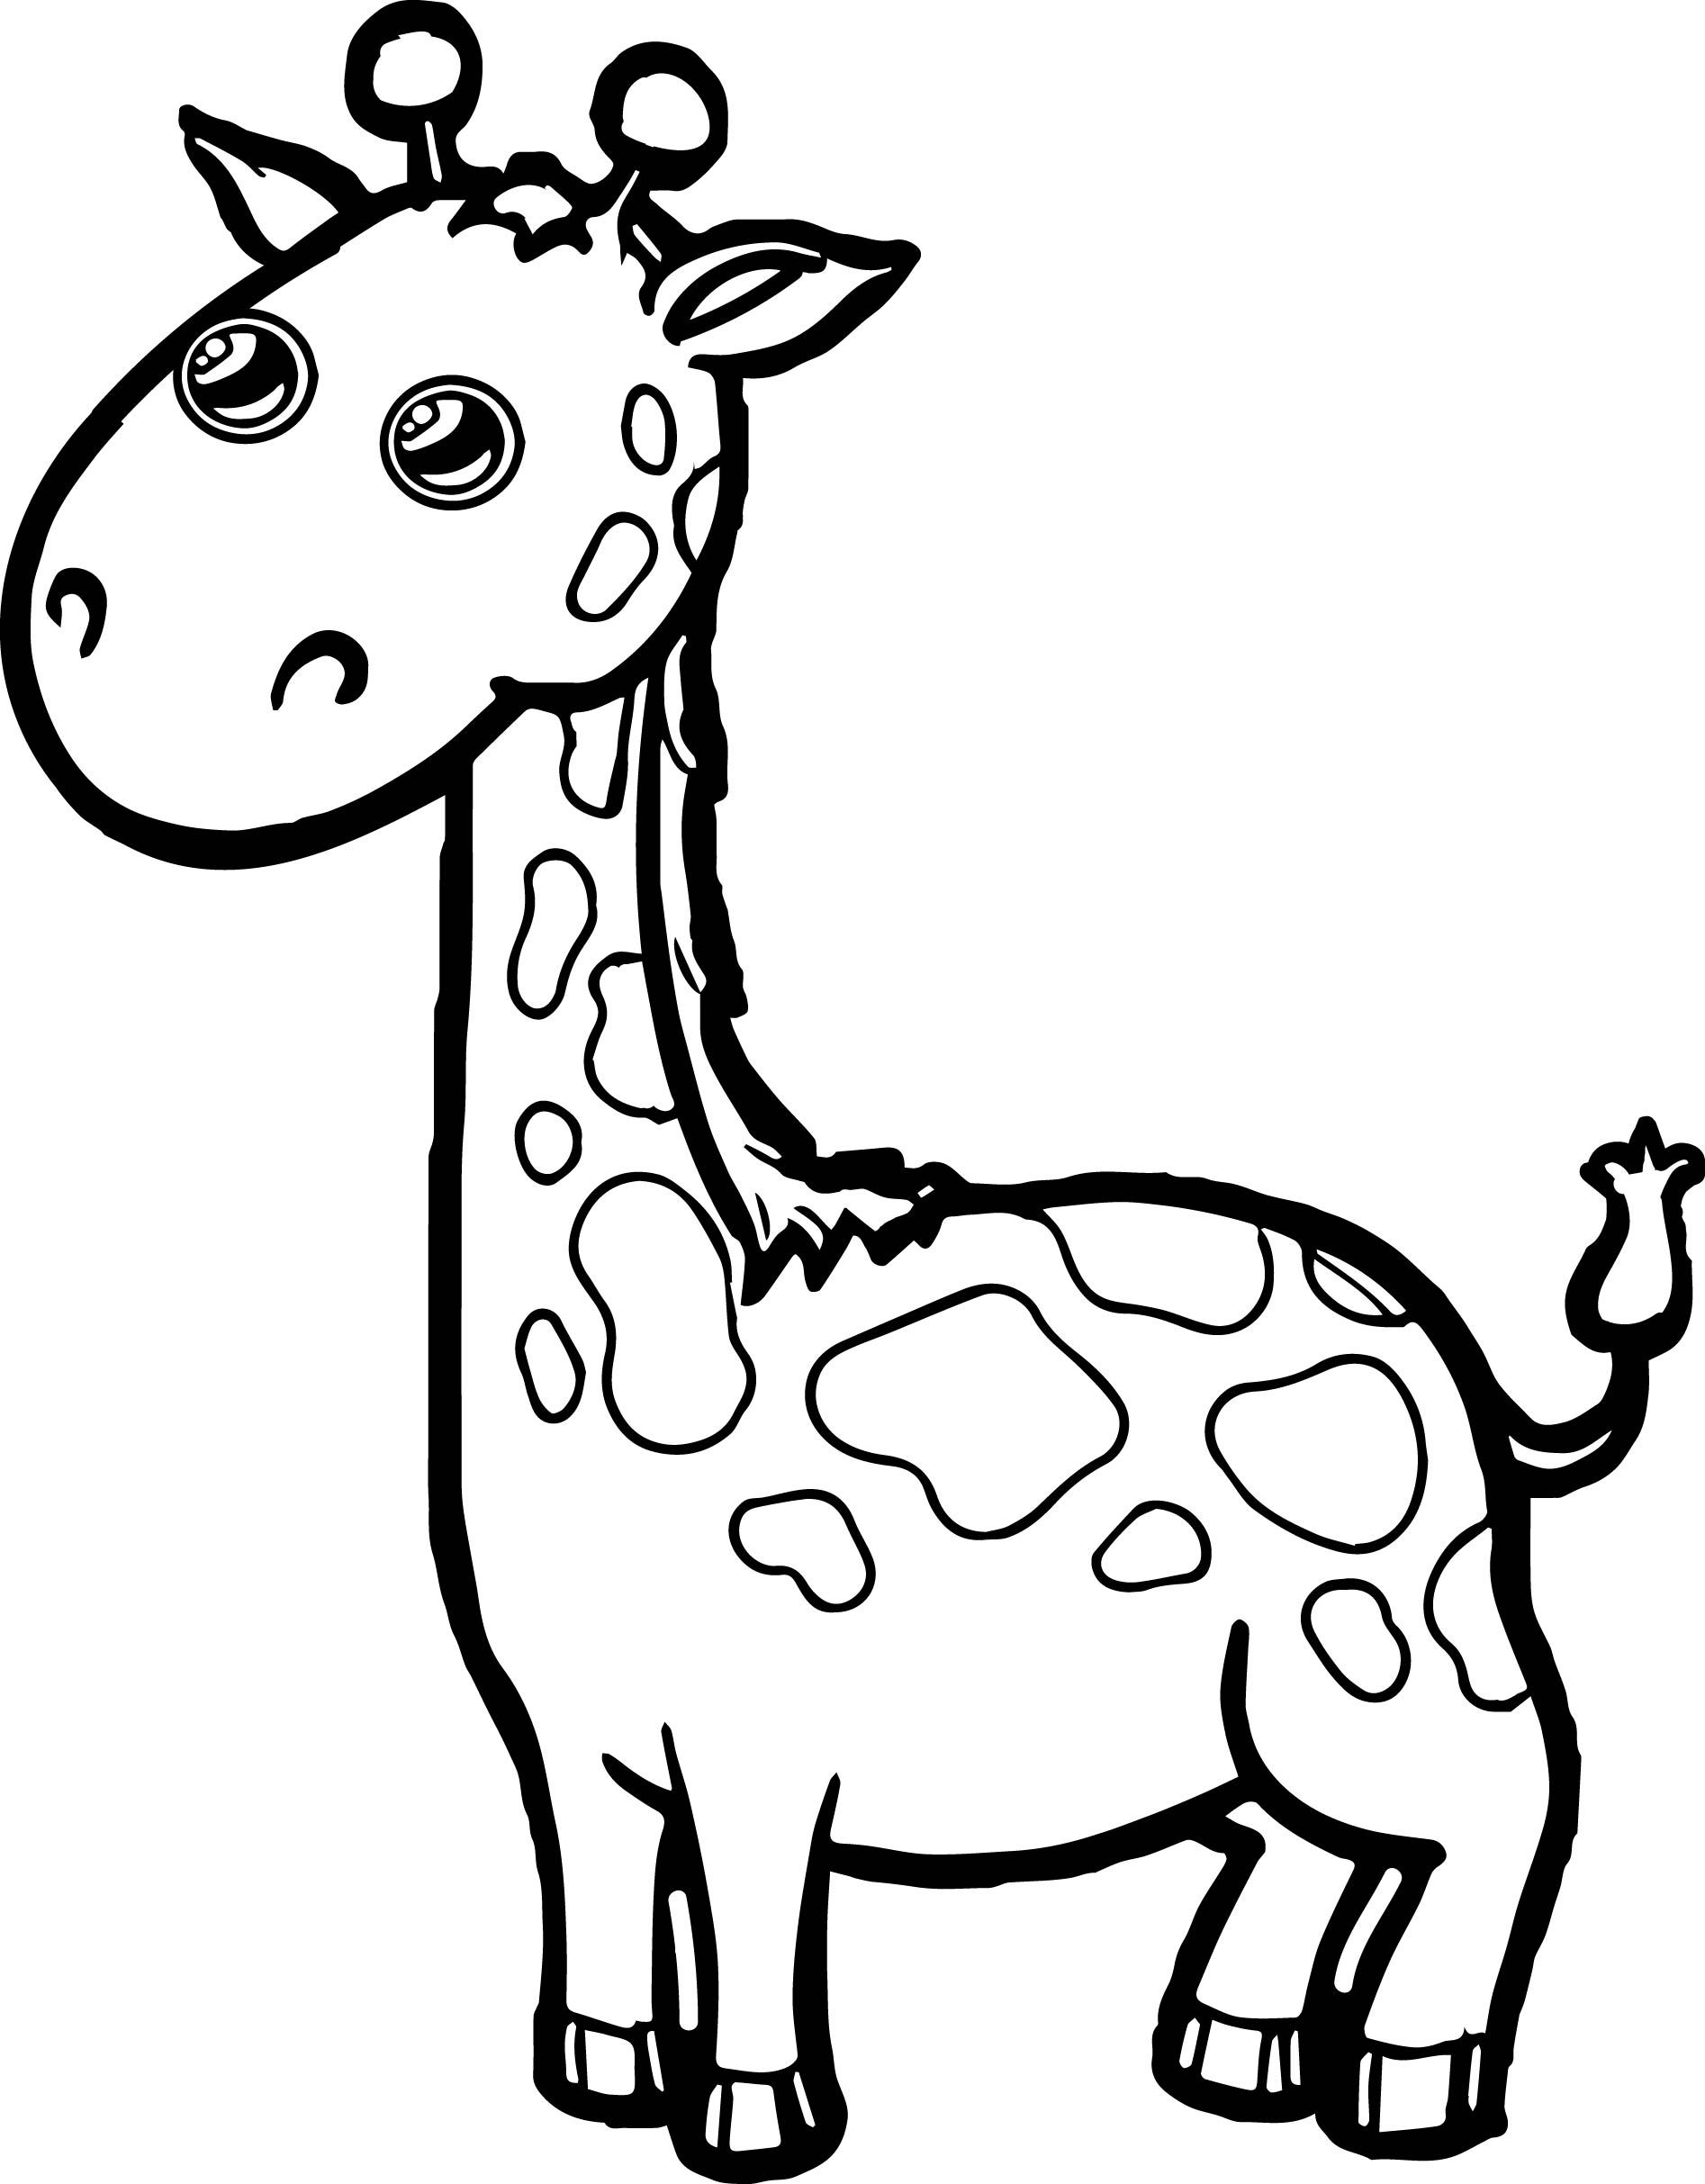 Zoo Giraffe Cartoon Coloring Page